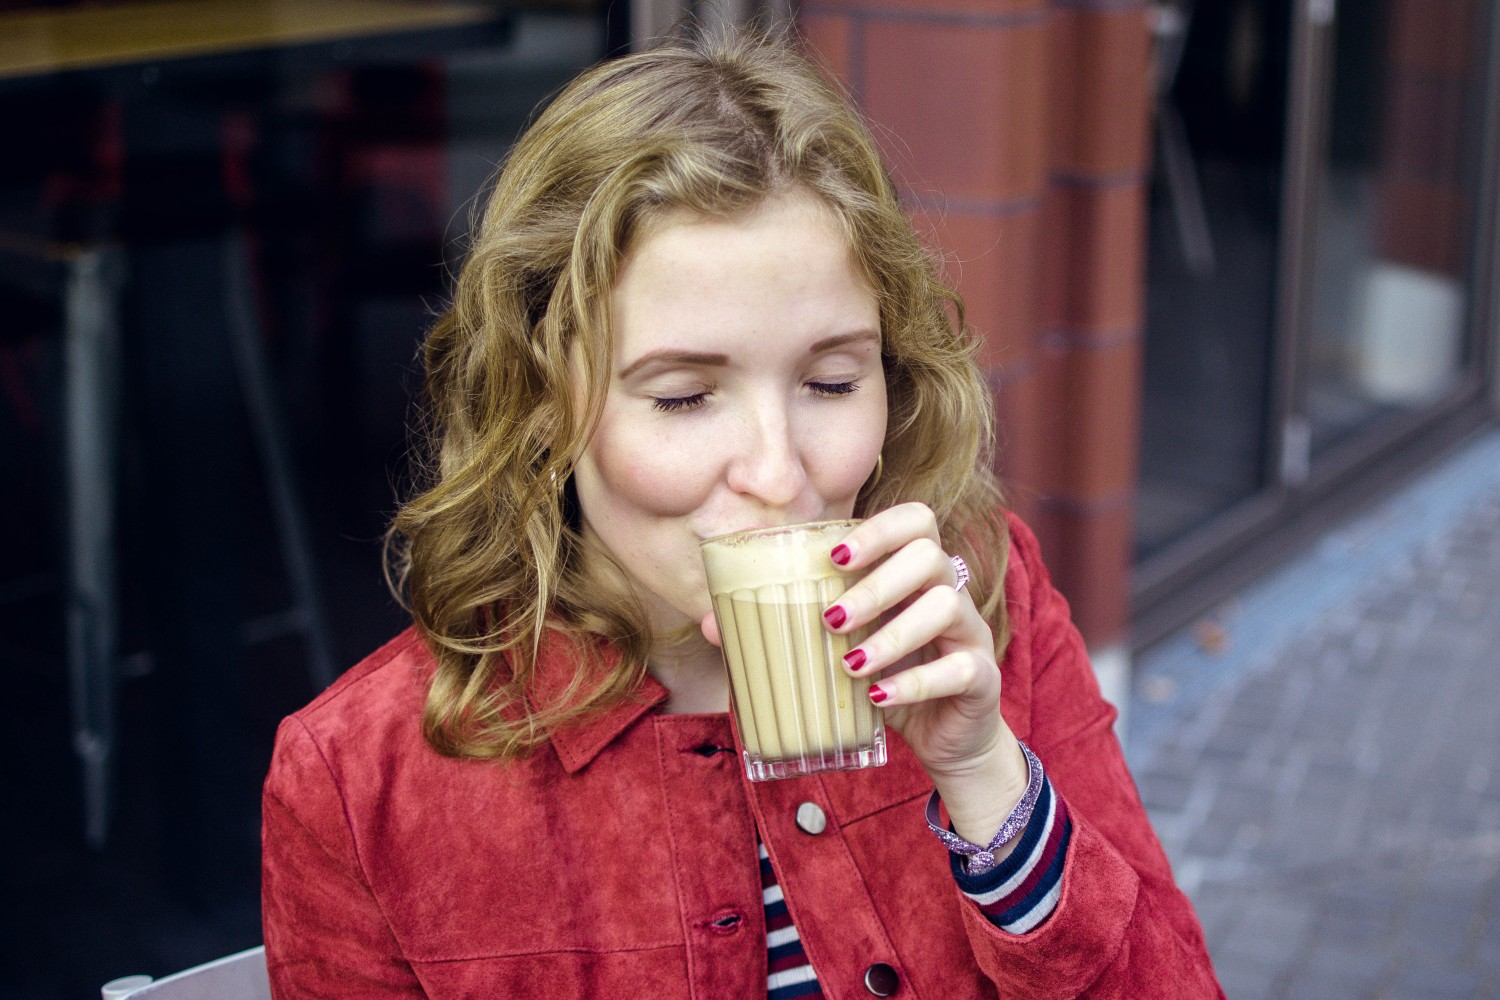 Caroline Sølver drinking coffee